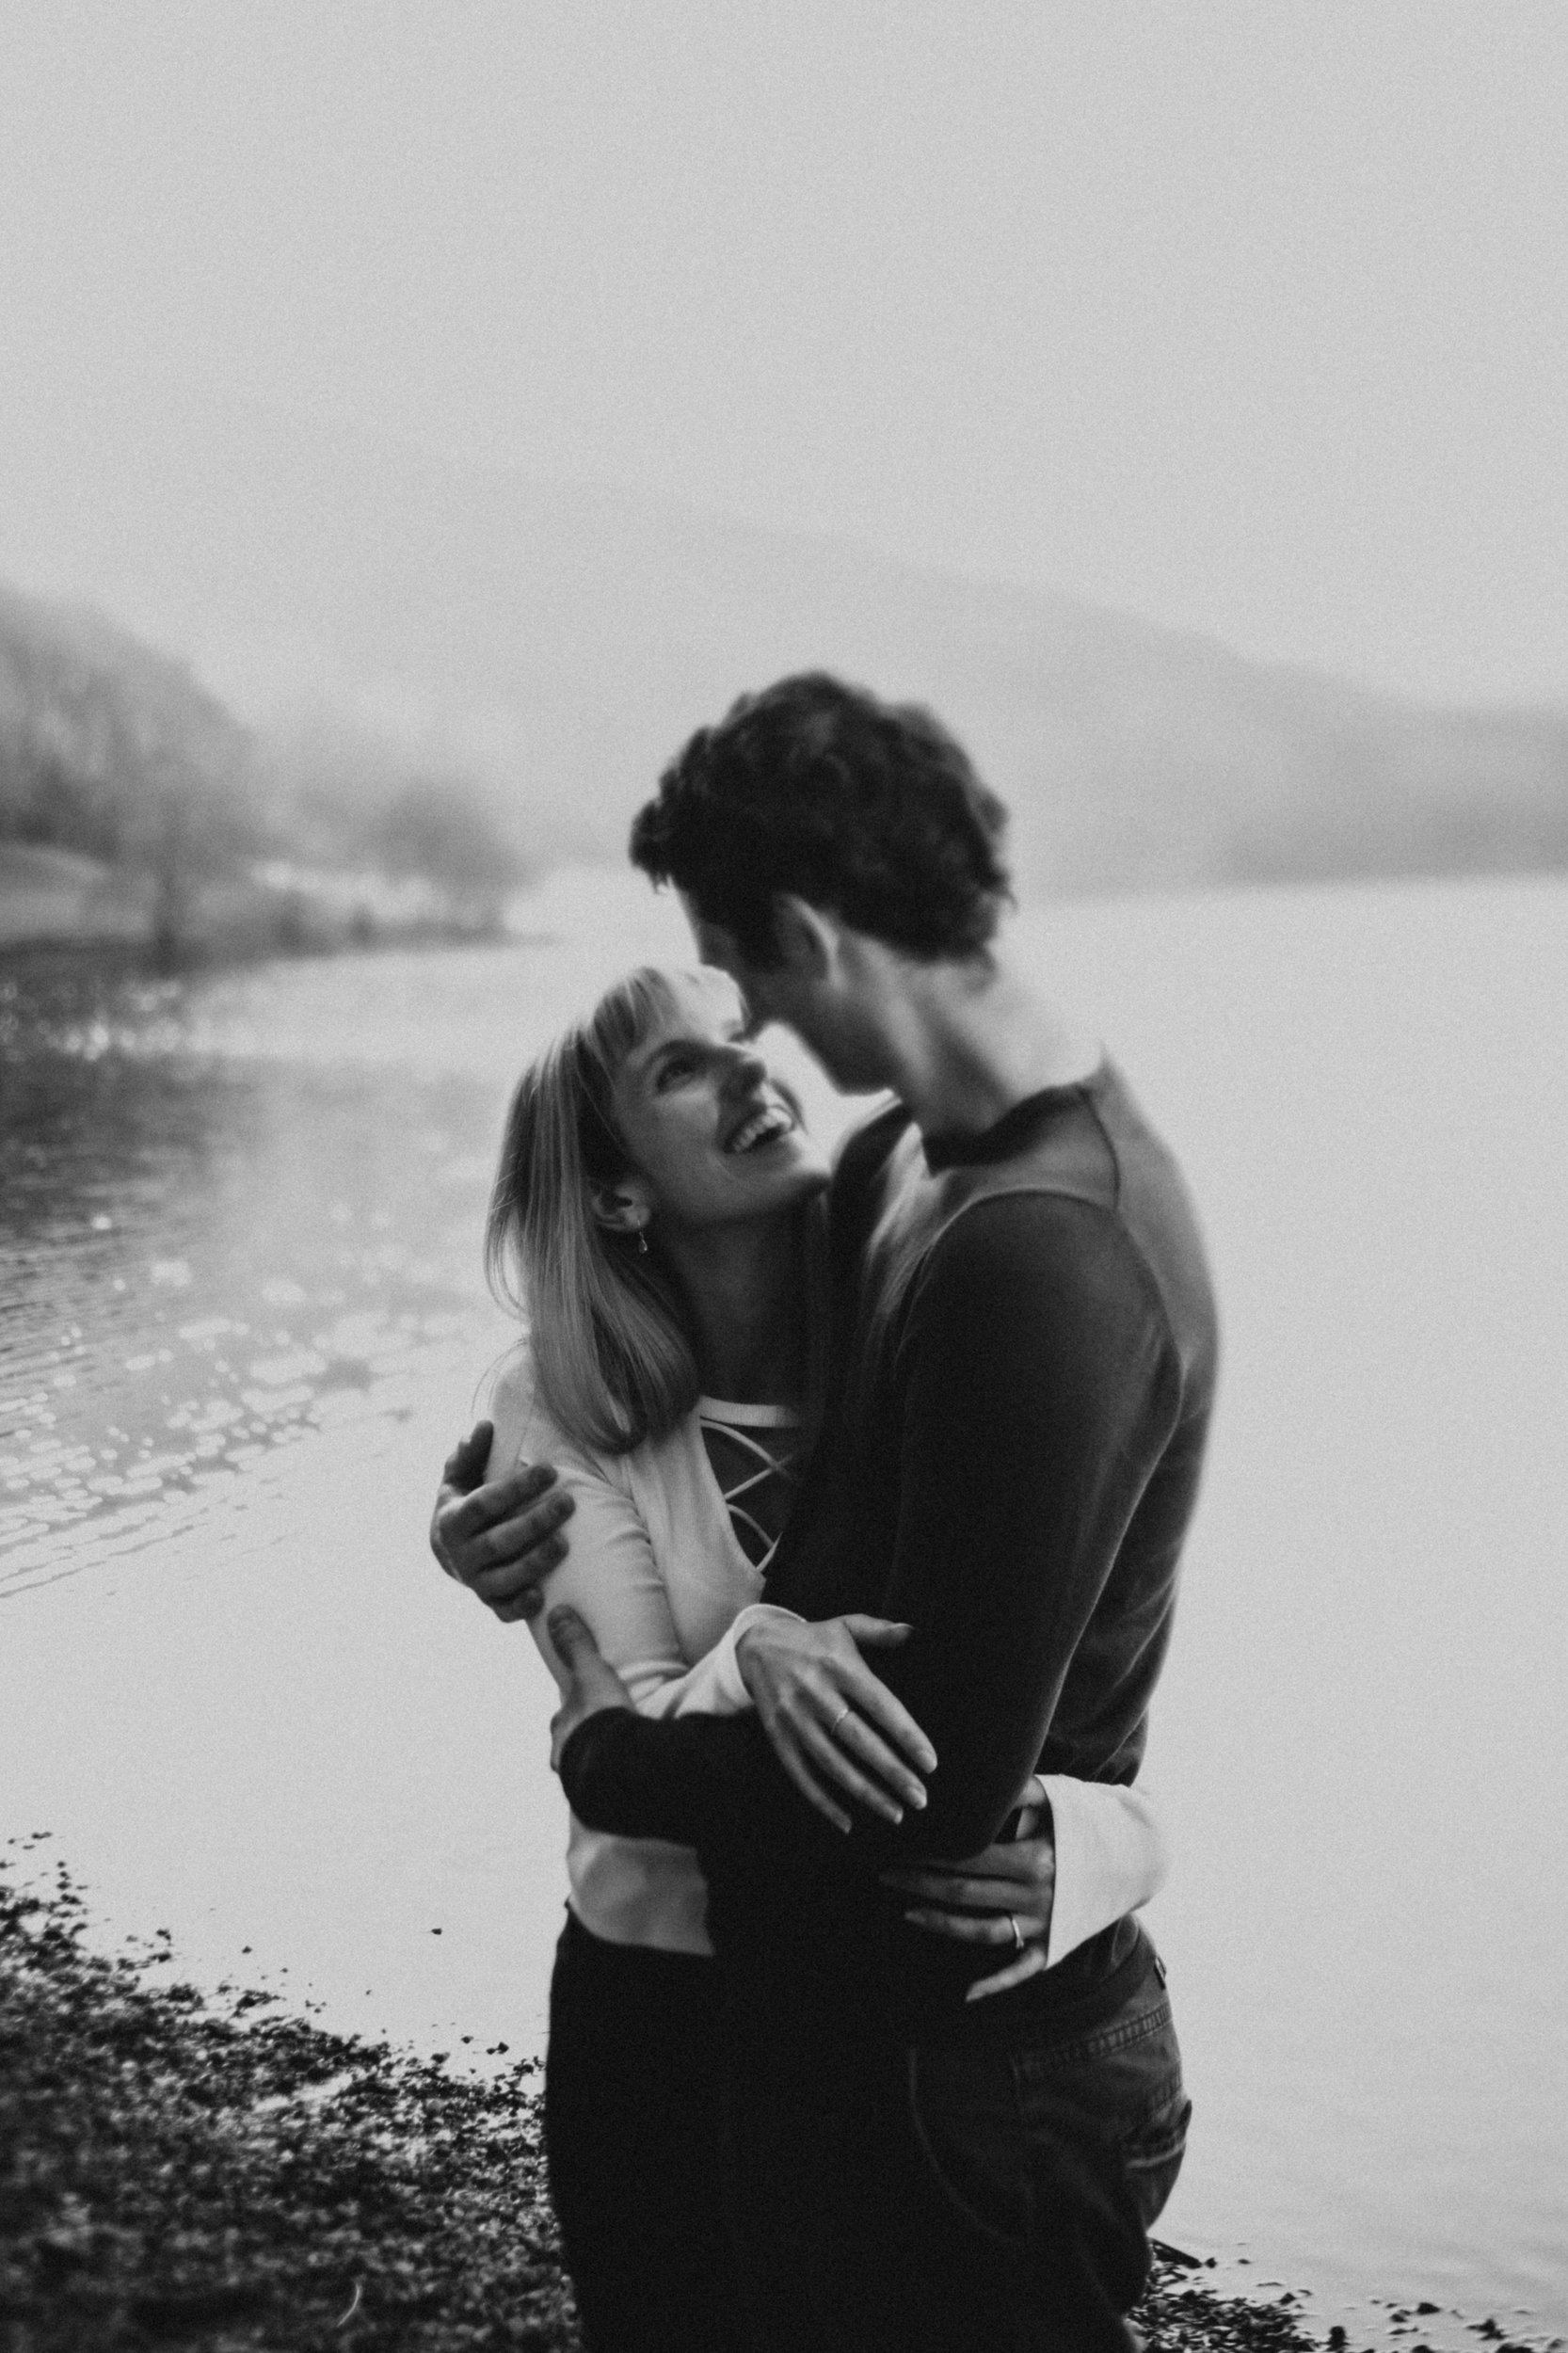 Claire-Clive-Engagement-Shoot-Lake-District-Darina-Stoda-Photography-64.jpg